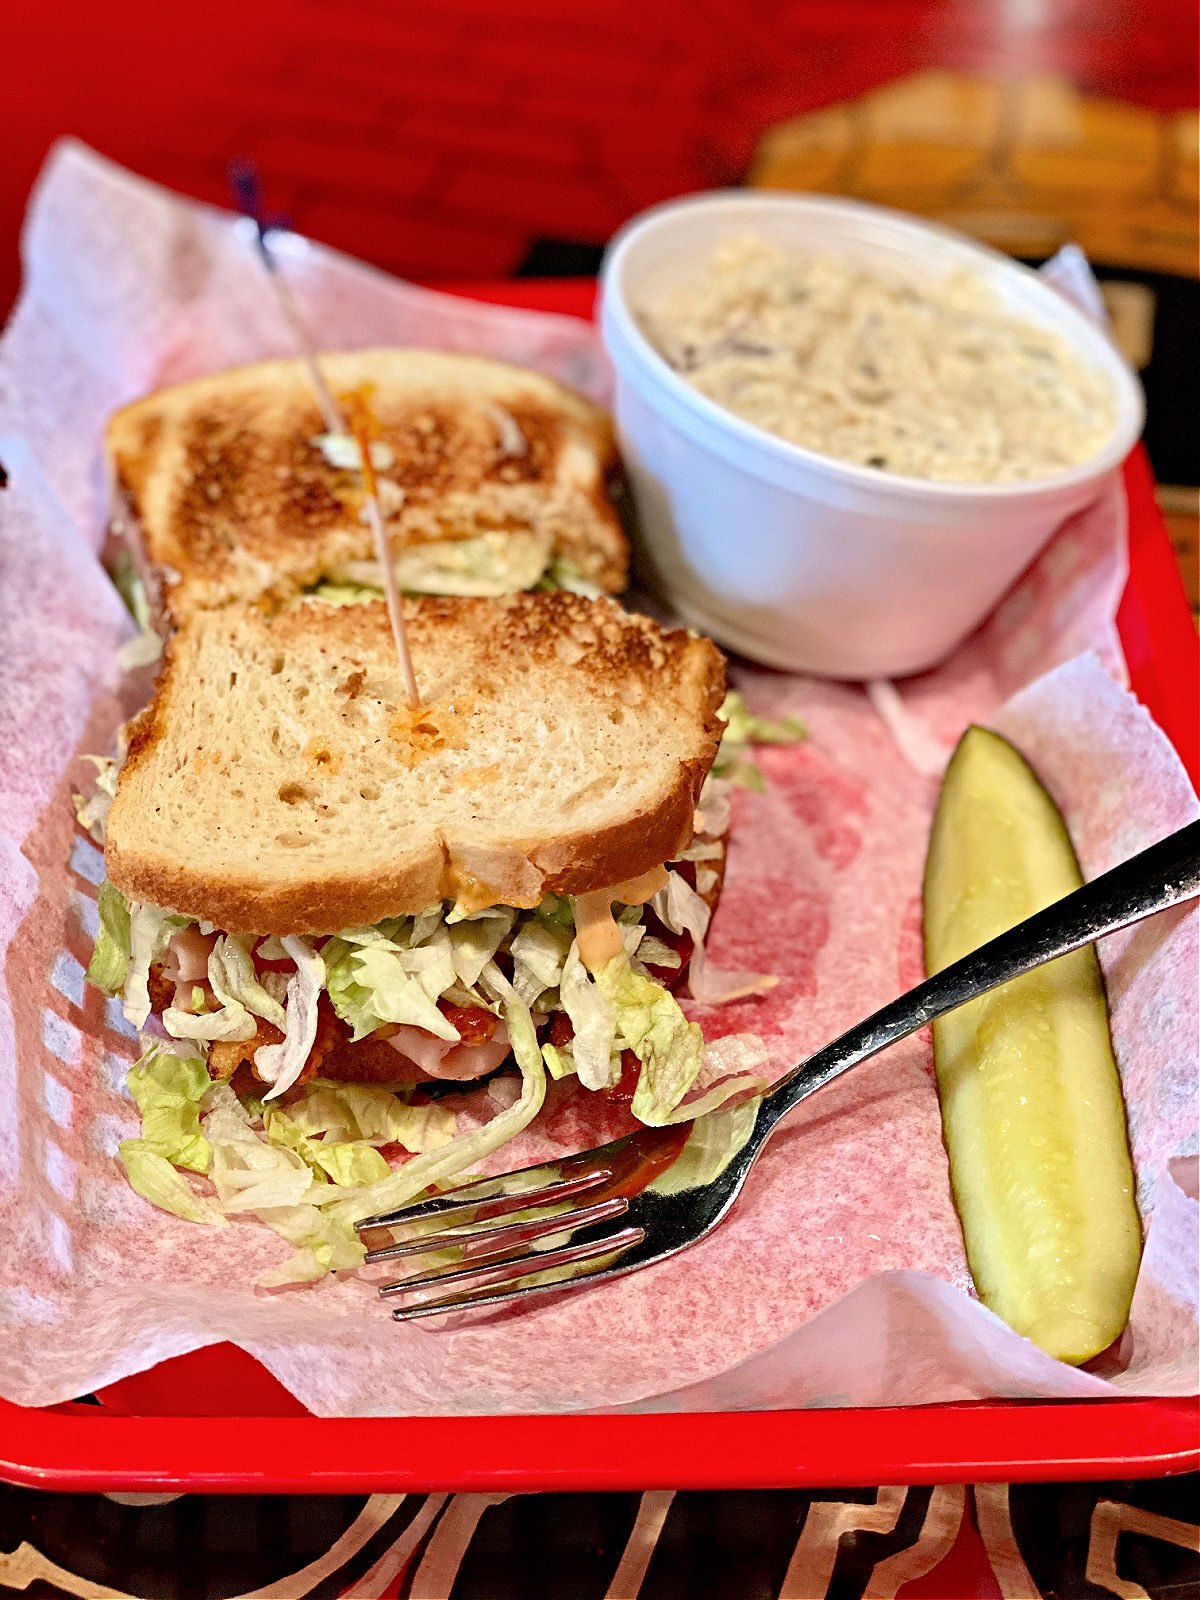 Basket with Smokey Joe Sandwich, a pickle spear, and cup of potato salad.